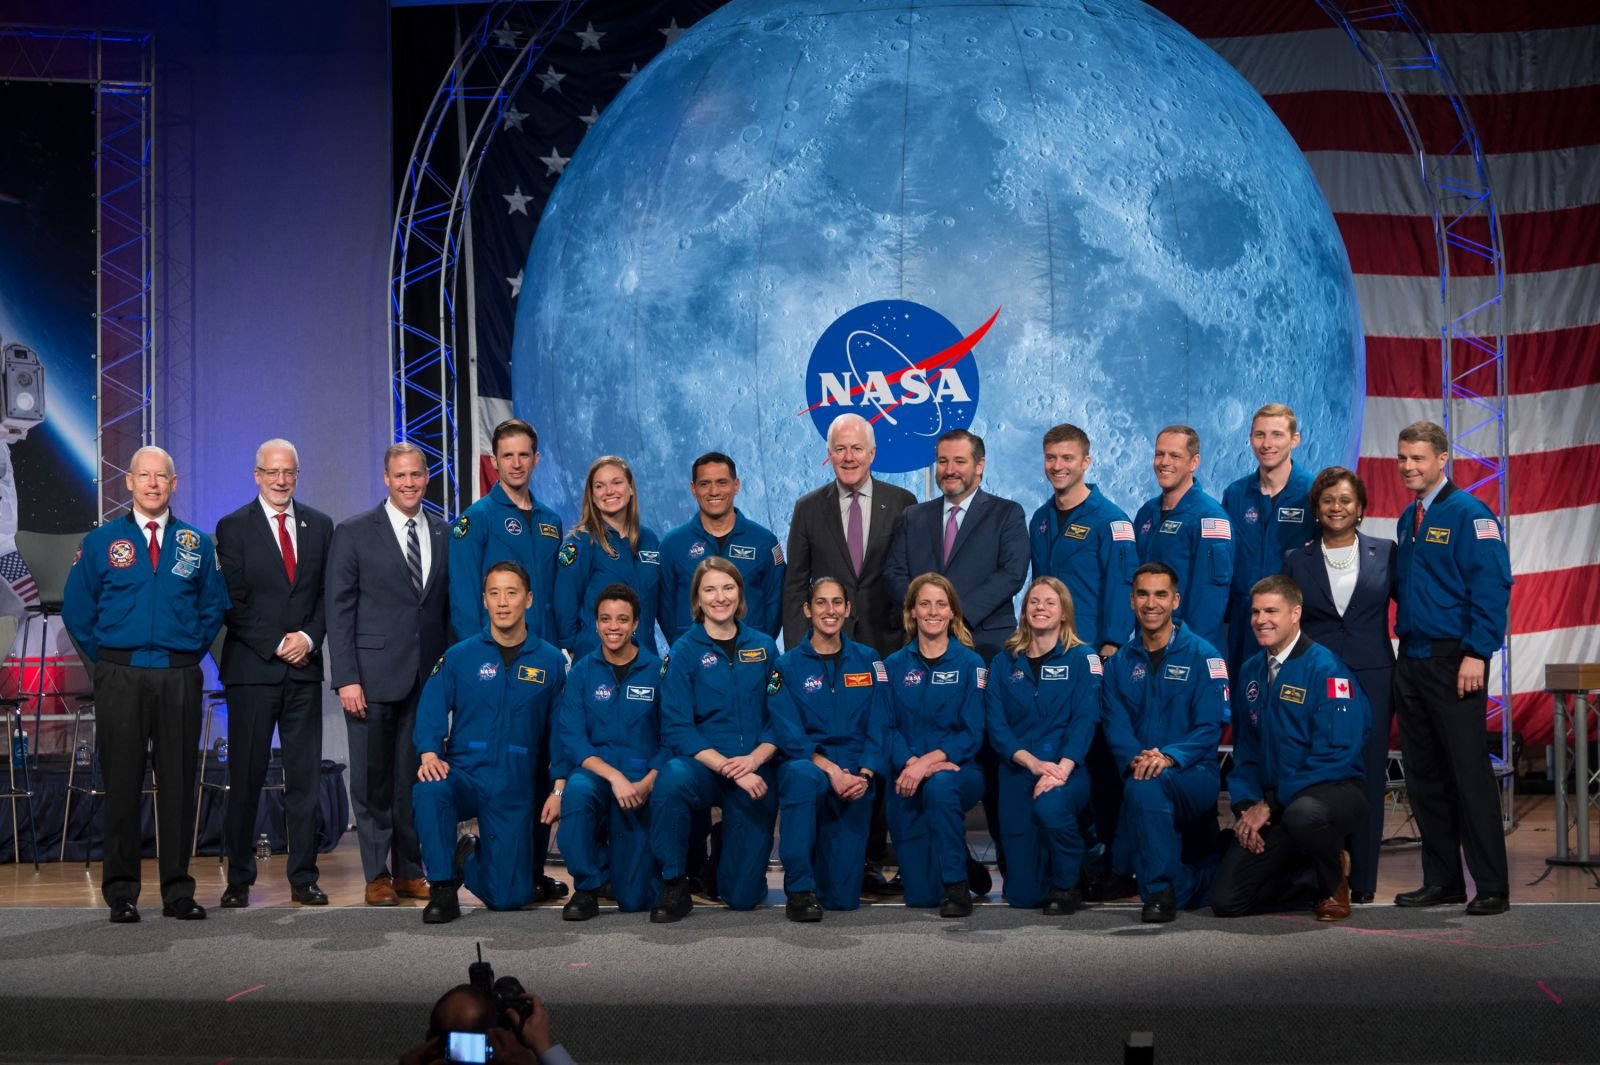 NASA's new class of astronauts – the first to graduate since the agency announced its Artemis program – appear on stage during their graduation ceremony at the agency's Johnson Space Center in Houston on Jan. 10, 2020. The class includes 11 NASA candidates, as well as two Canadian Space Agency (CSA) candidates, selected in 2017. They will join the active astronaut corps, beginning careers in exploration that may take them to the International Space Station, on missions to the Moon under the Artemis program, or someday, Mars. Pictured from left are: Kayla Barron of NASA, Zena Cardman of NASA, Raja Chari of NASA, Matthew Dominick of NASA, Bob Hines of NASA, Warren Hoburg of NASA, Jonny Kim of NASA, Joshua Kutryk of CSA, Jasmin Moghbeli of NASA, Loral O'Hara of NASA, Jessica Watkins of NASA, Jennifer Sidey-Gibbons of CSA, and Frank Rubio of NASA. Photo and Caption Credit: NASA